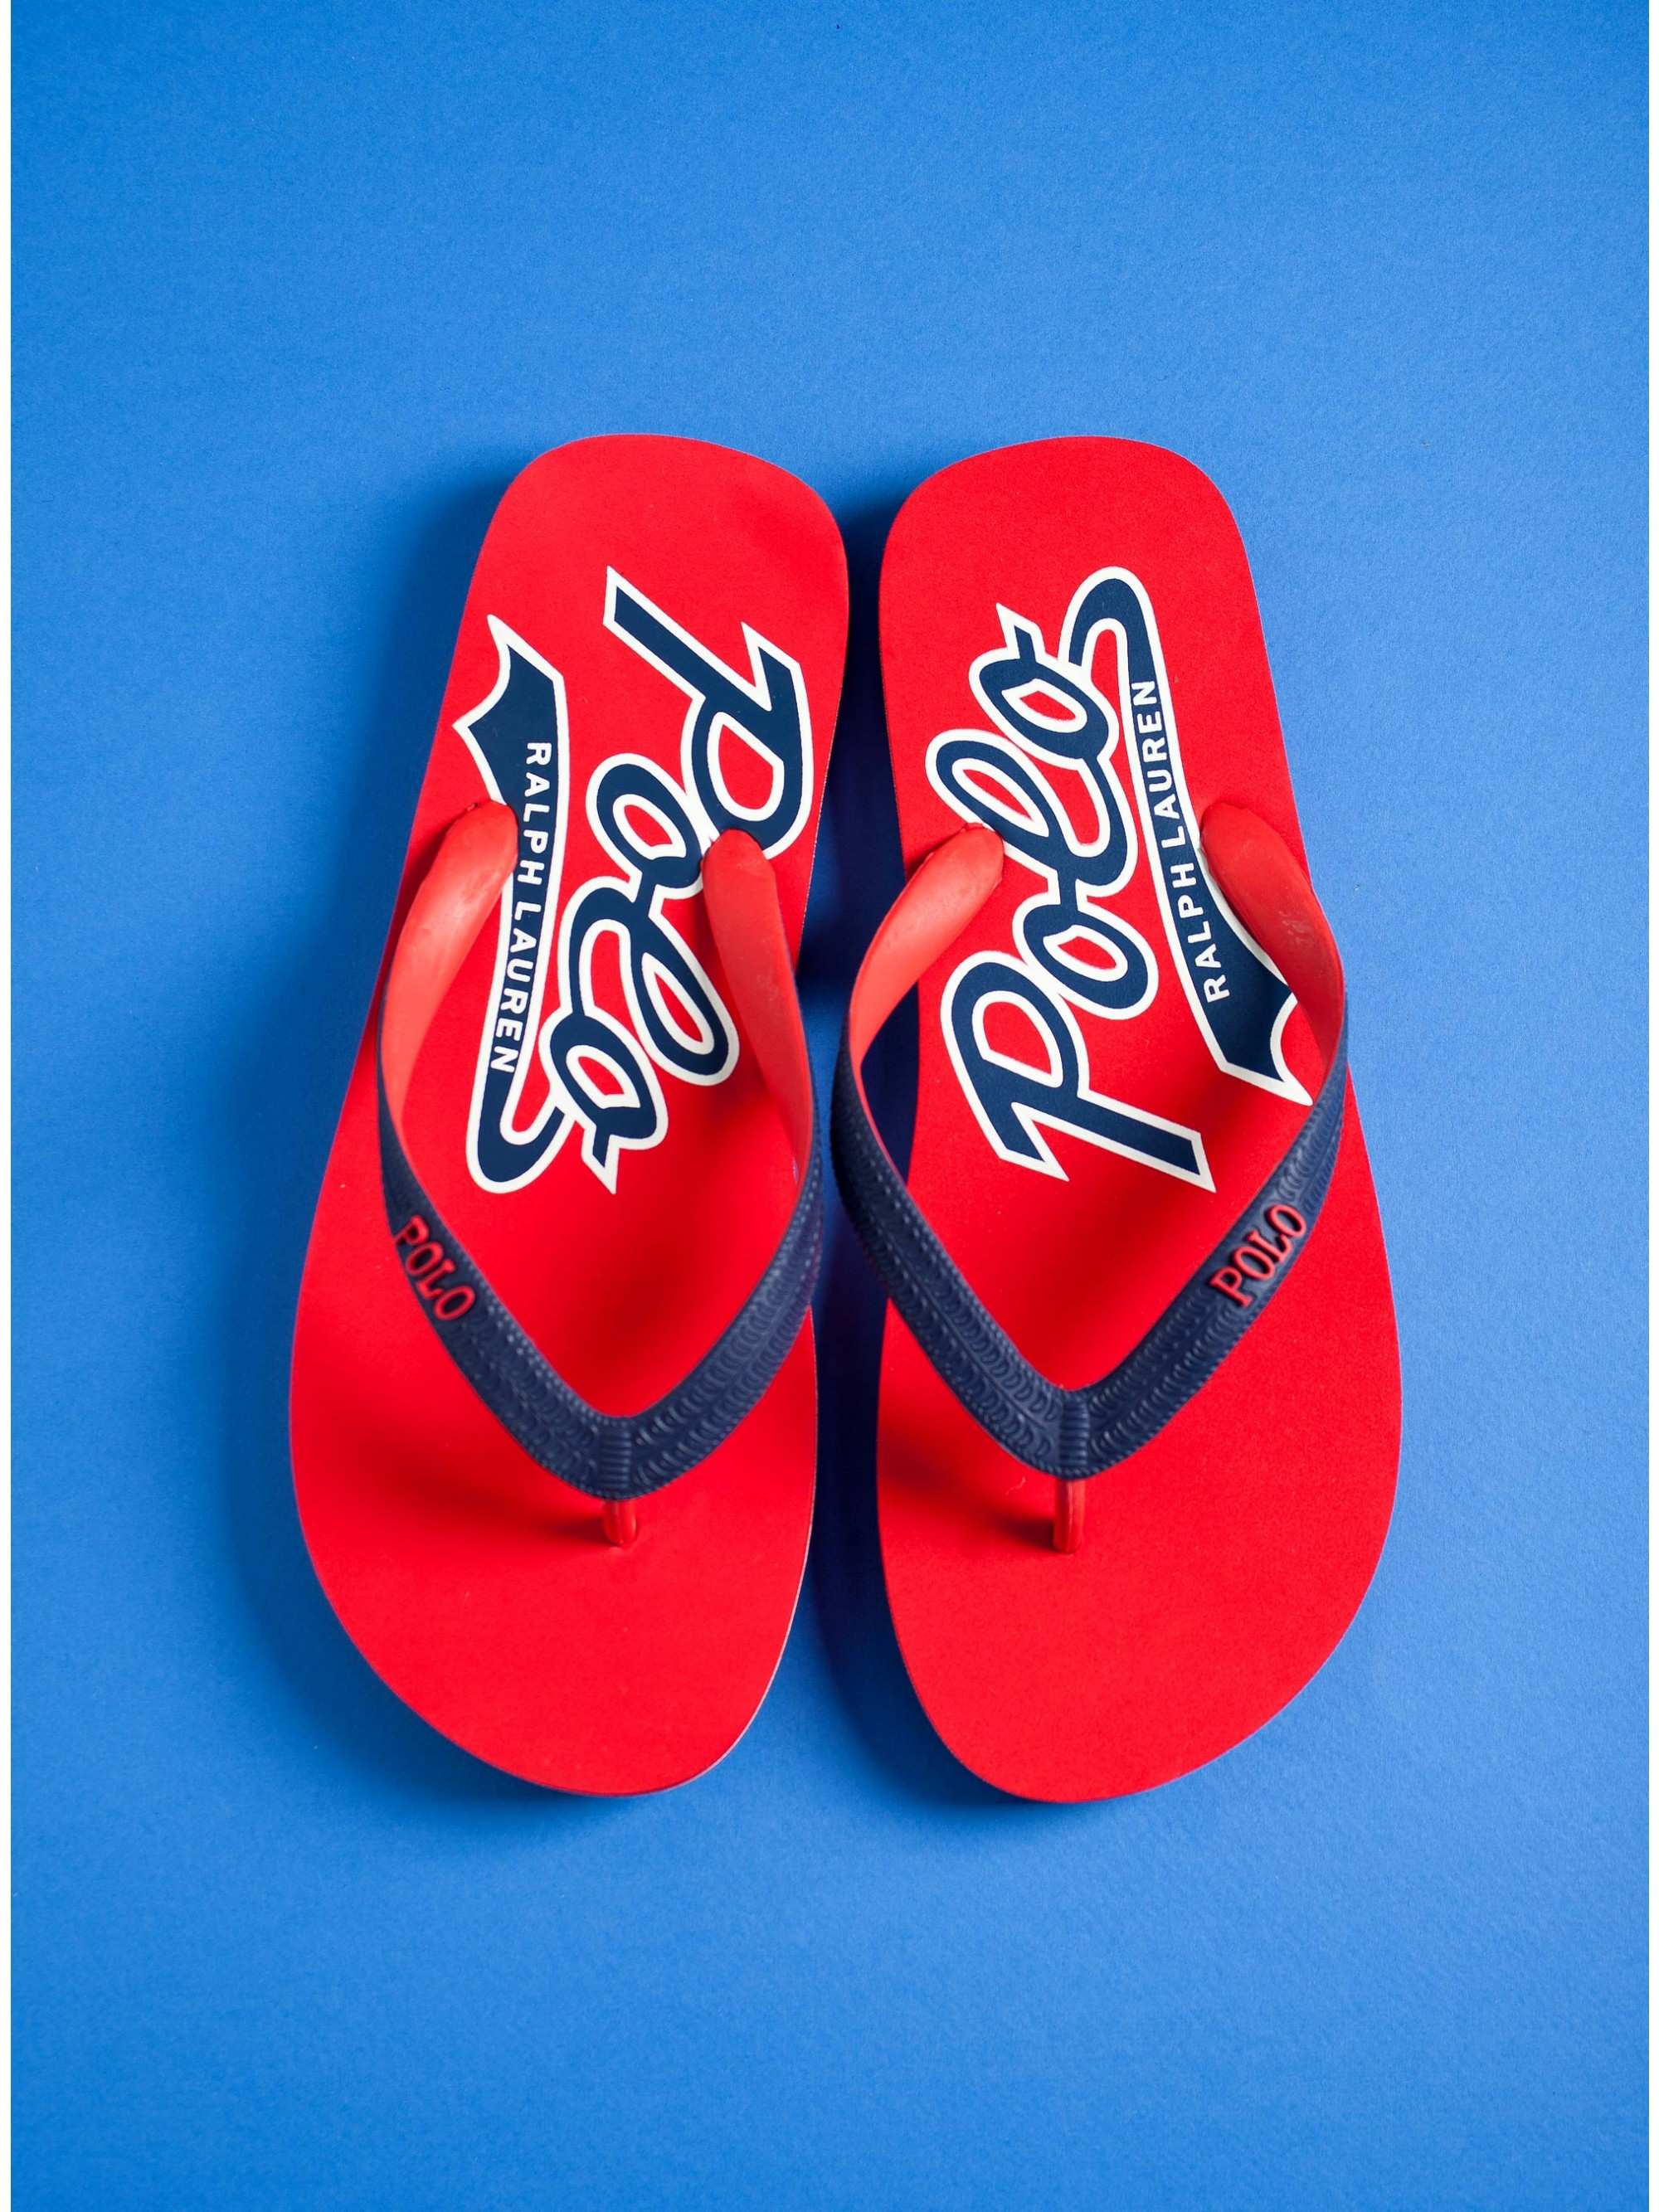 4ce4c771bce Home  Polo Ralph Lauren Flip-Flops WhitleburyII-Sn-Csl-Red. Tap to expand